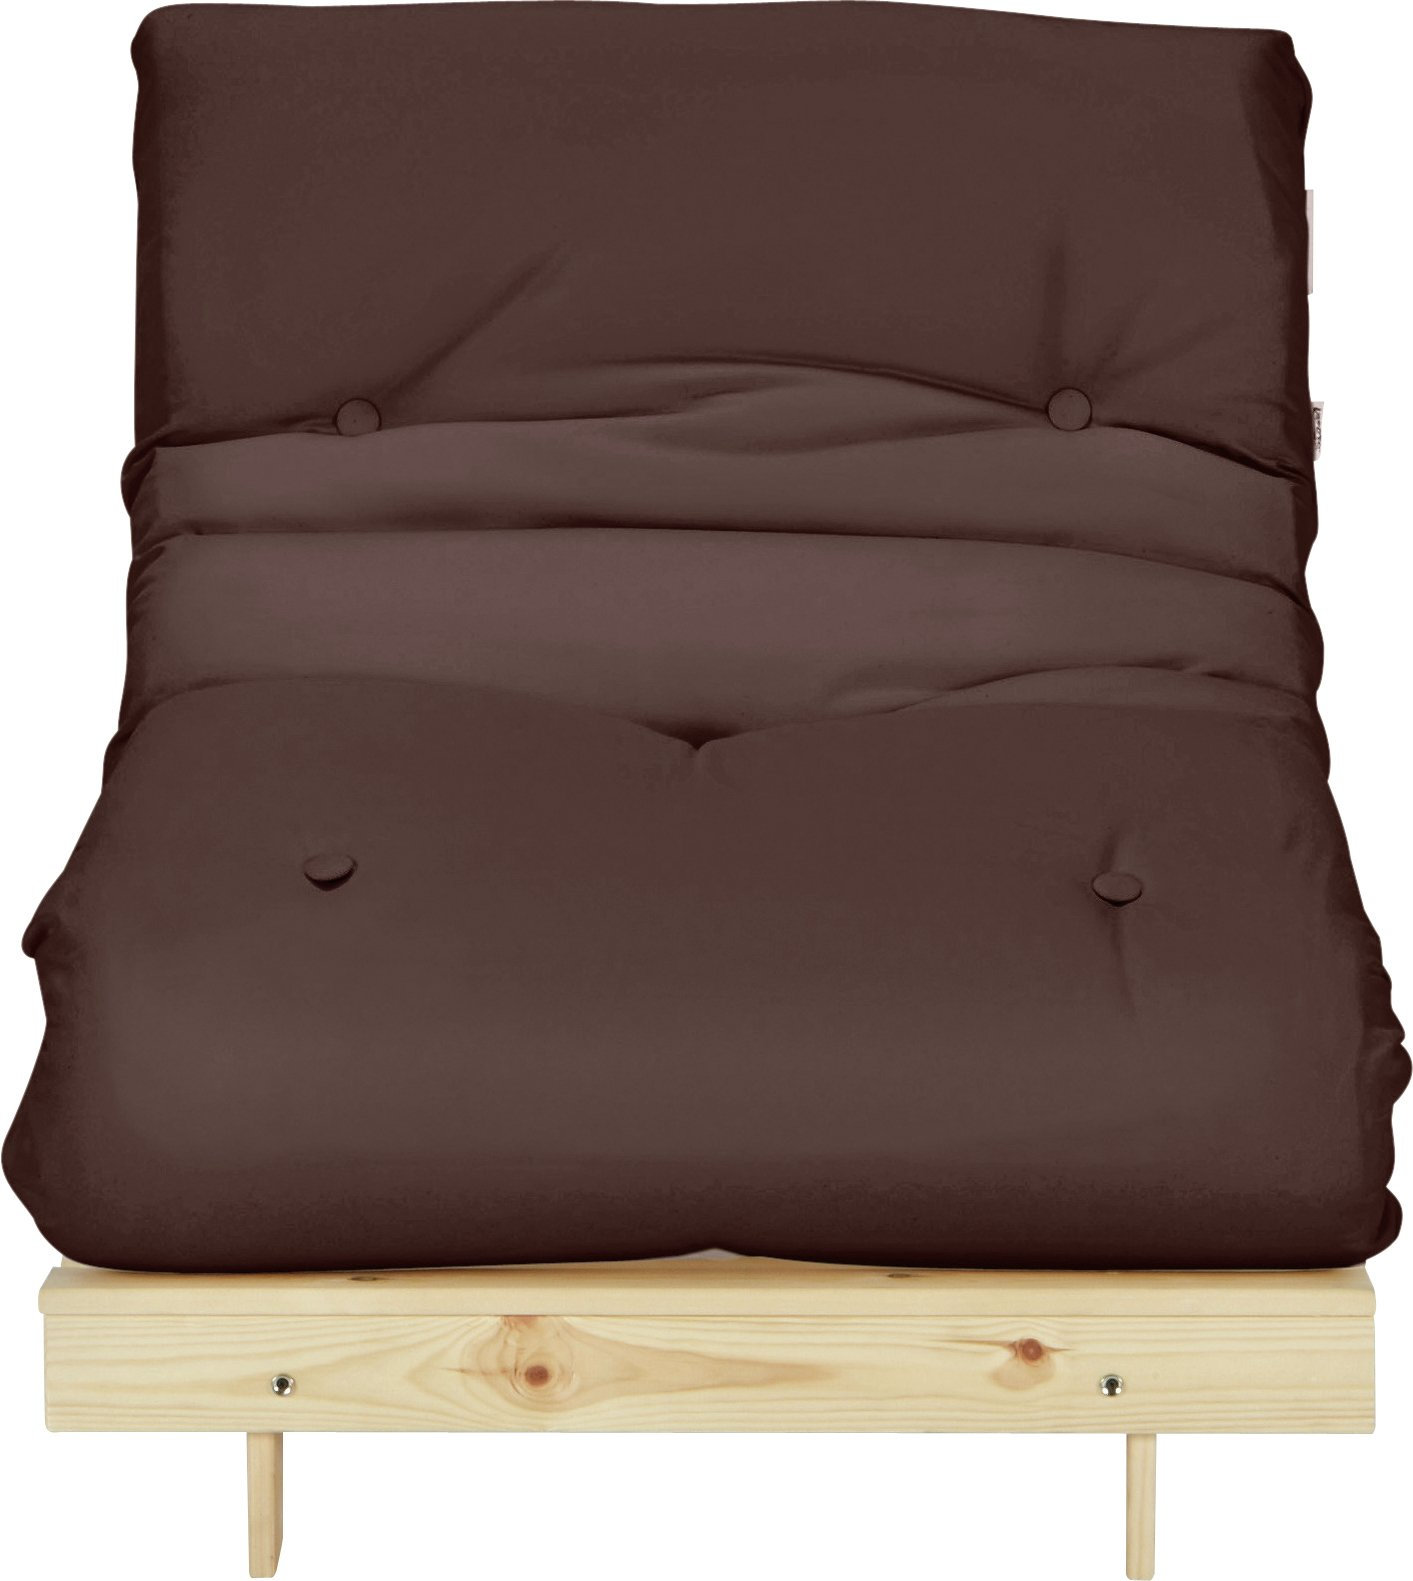 Argos Home Single Futon Sofa Bed with Mattress - Chocolate